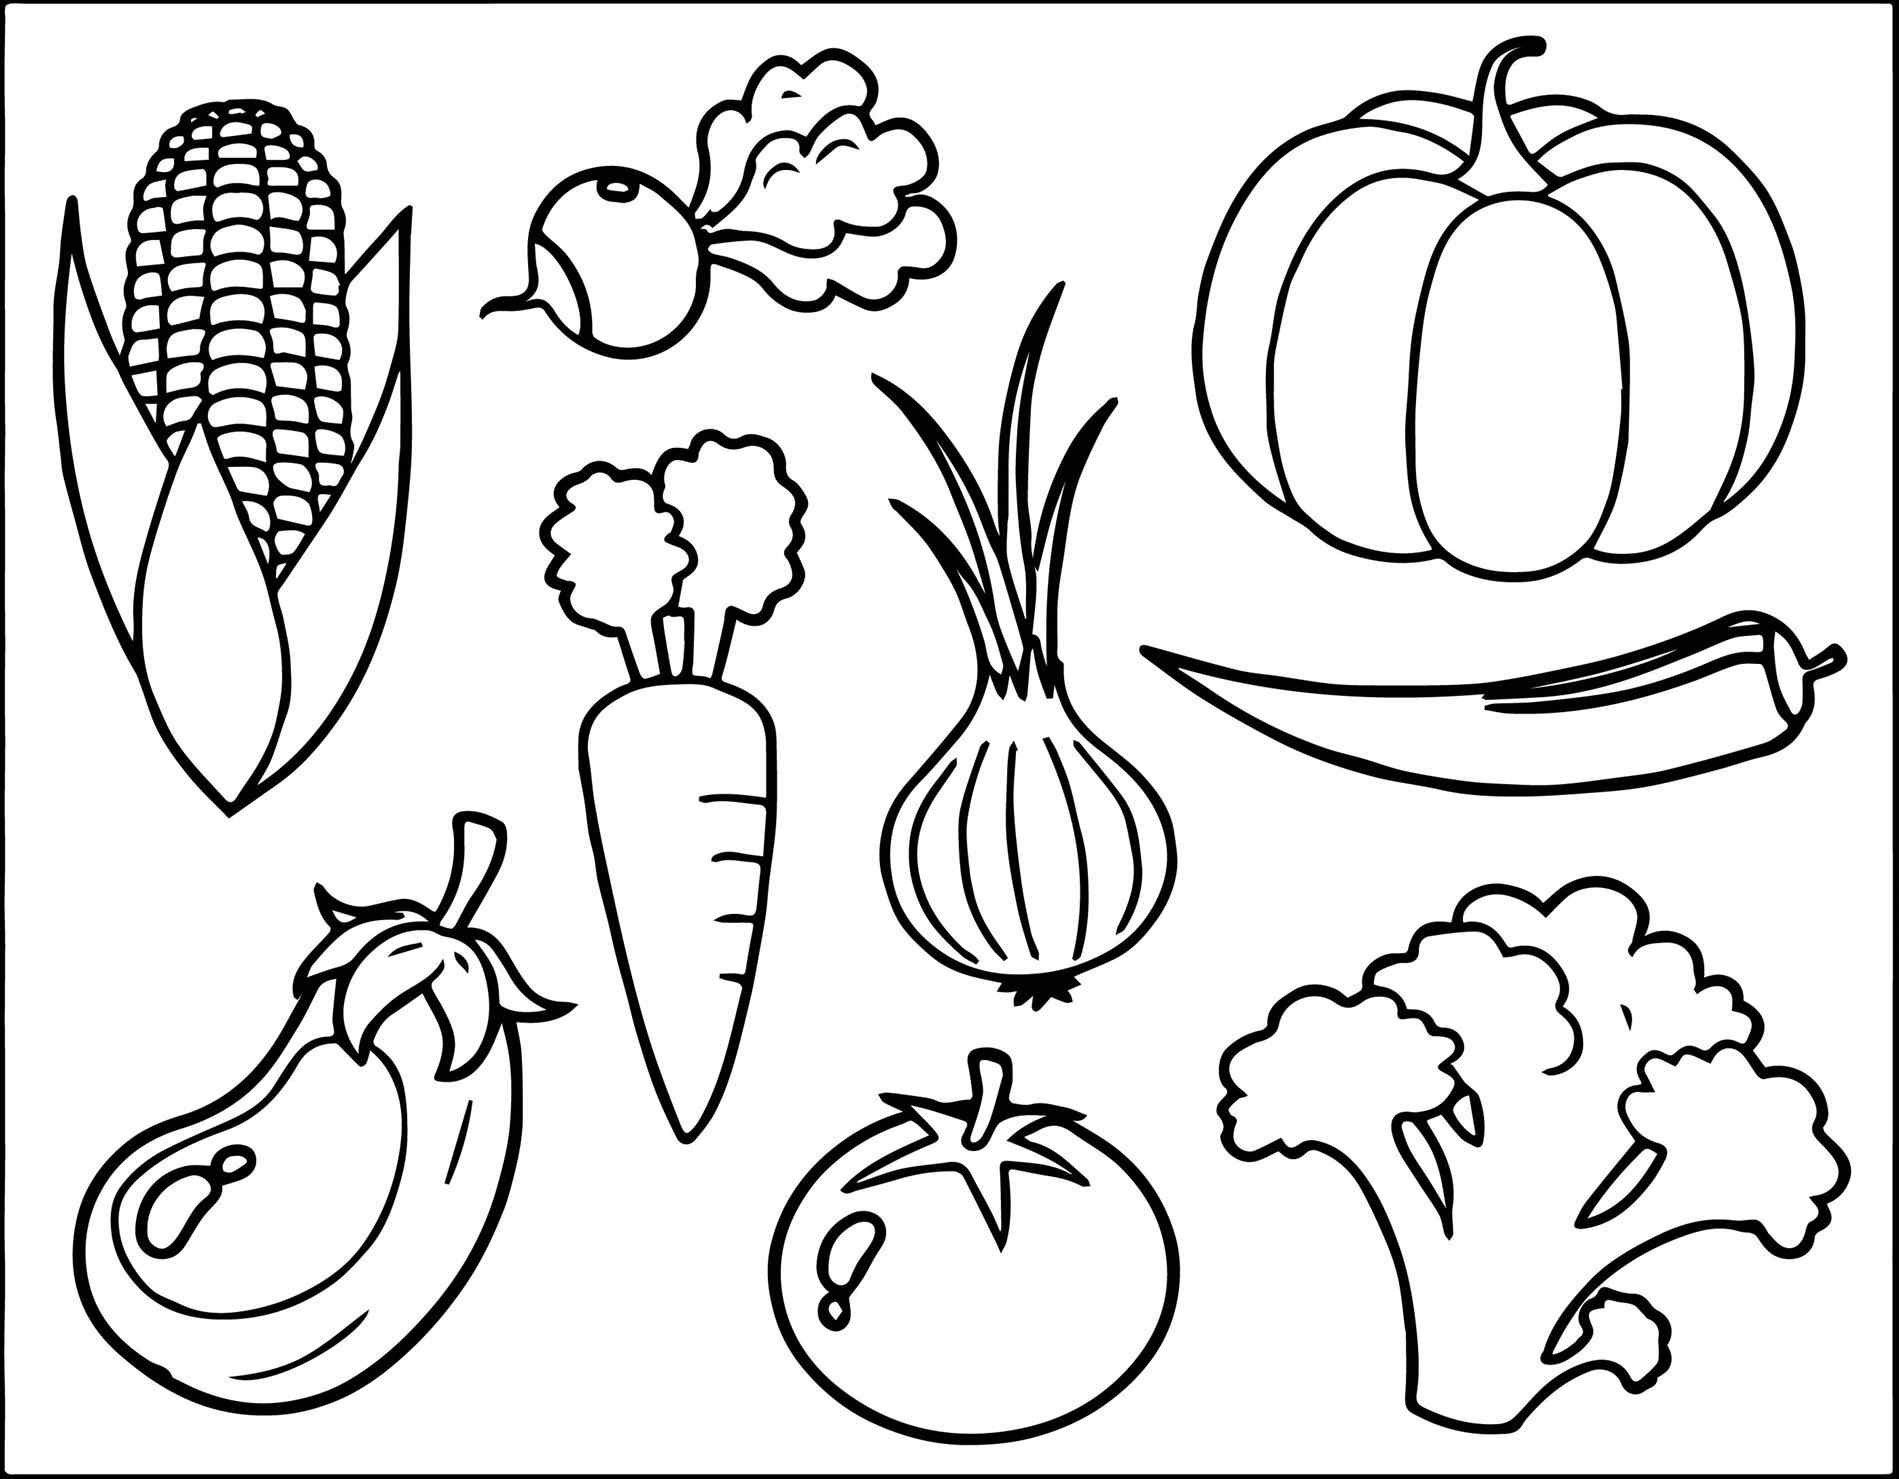 Healthy Food Coloring Pages Printable on a budget